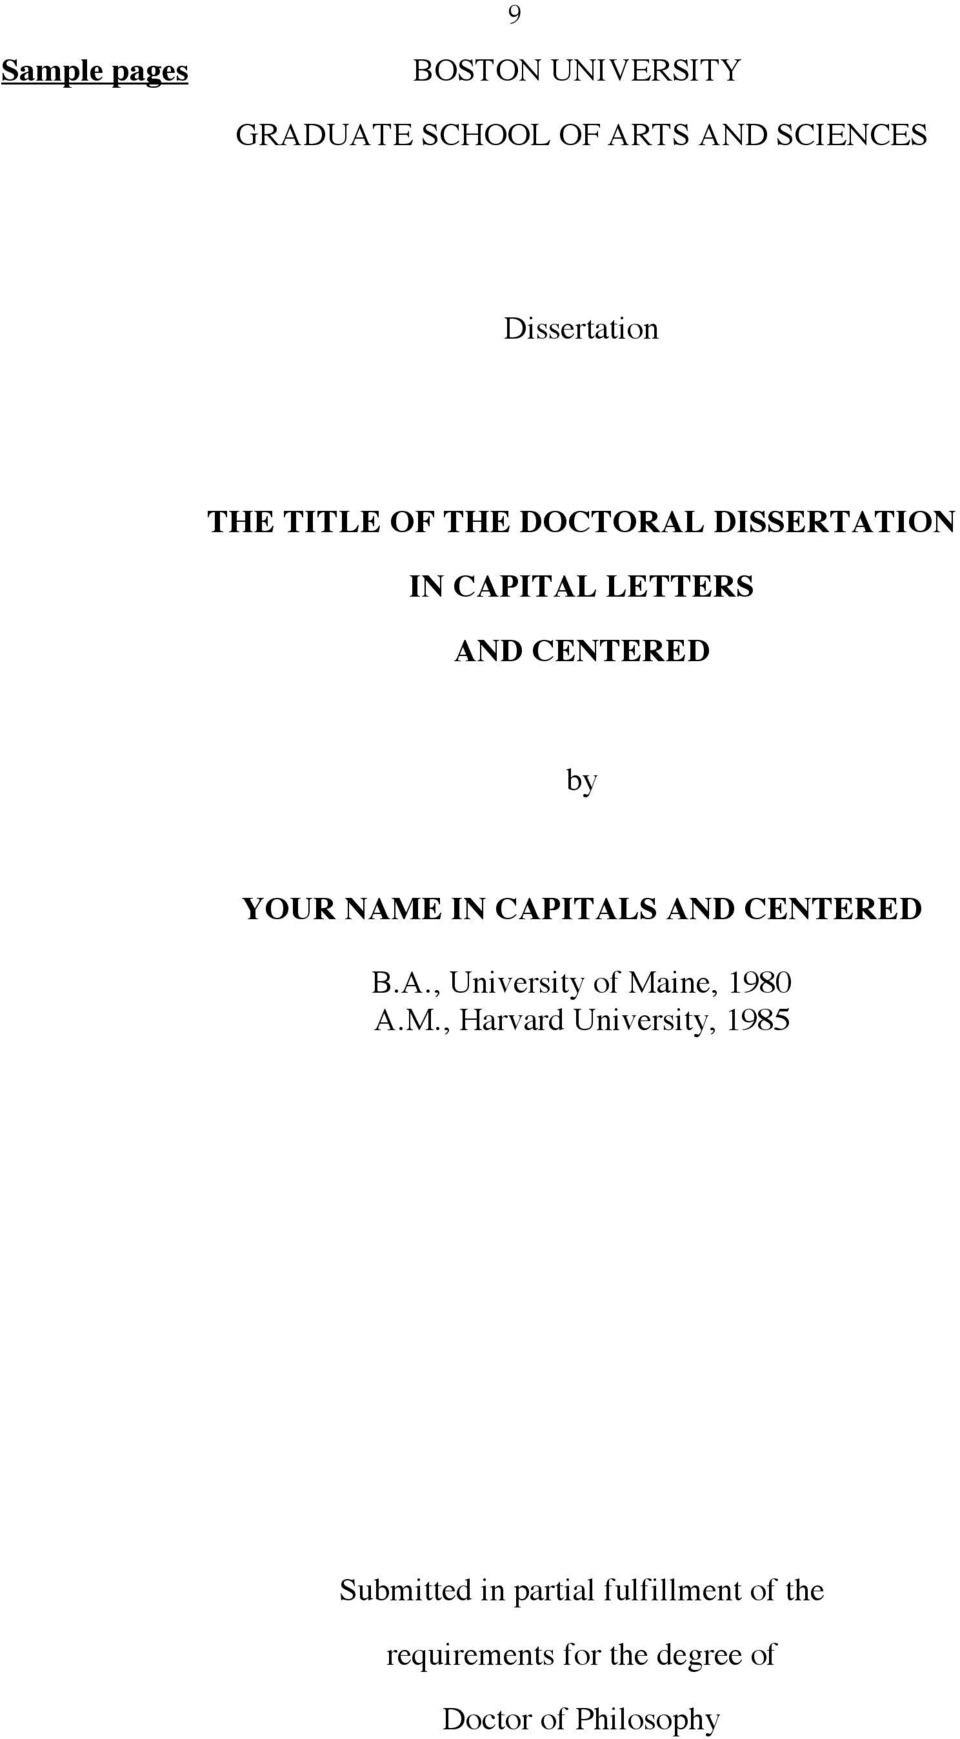 CAPITALS AND CENTERED B.A., University of Ma